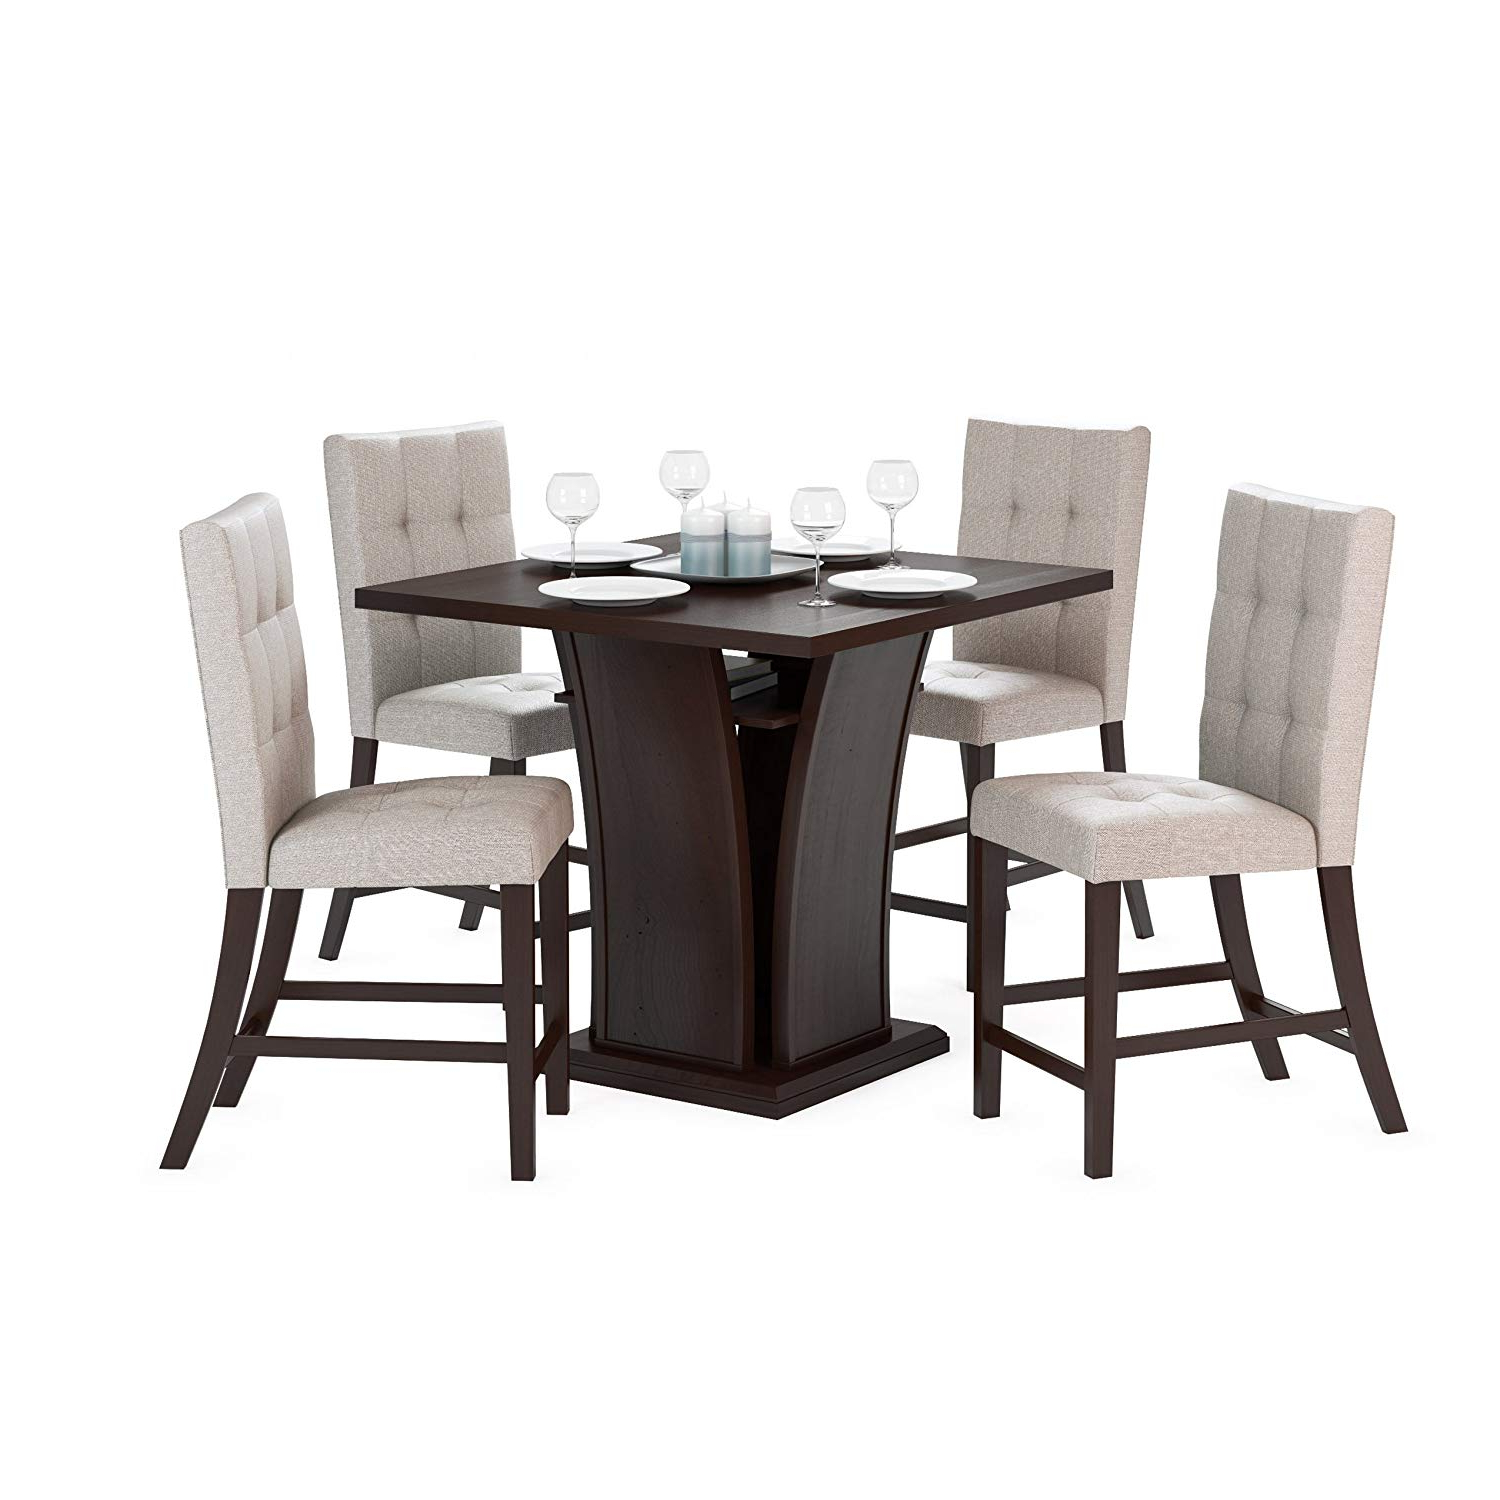 "Corliving Dwp 390 Z1 Bistro 5 Piece 36"" Counter Height Cappuccino Wood Dining Set With Storage Shelf Tufted Platinum Sage Seats Regarding Recent Bistro Transitional 4 Seating Square Dining Tables (View 6 of 30)"